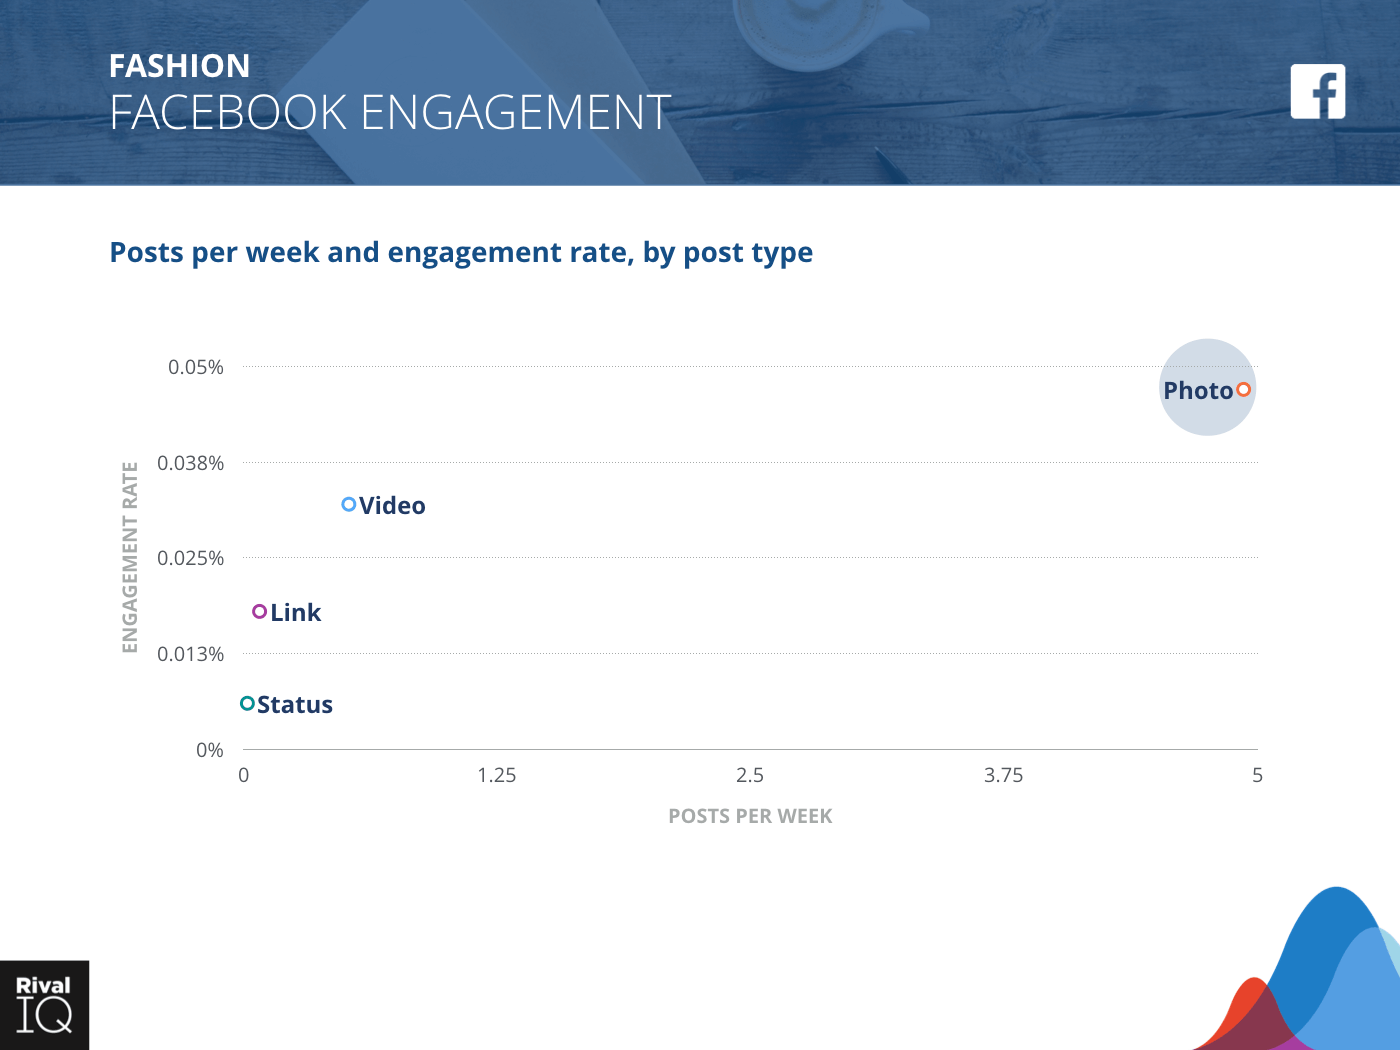 Fashion Industry: scatter graph, average post per week by type and engagement rate on Facebook